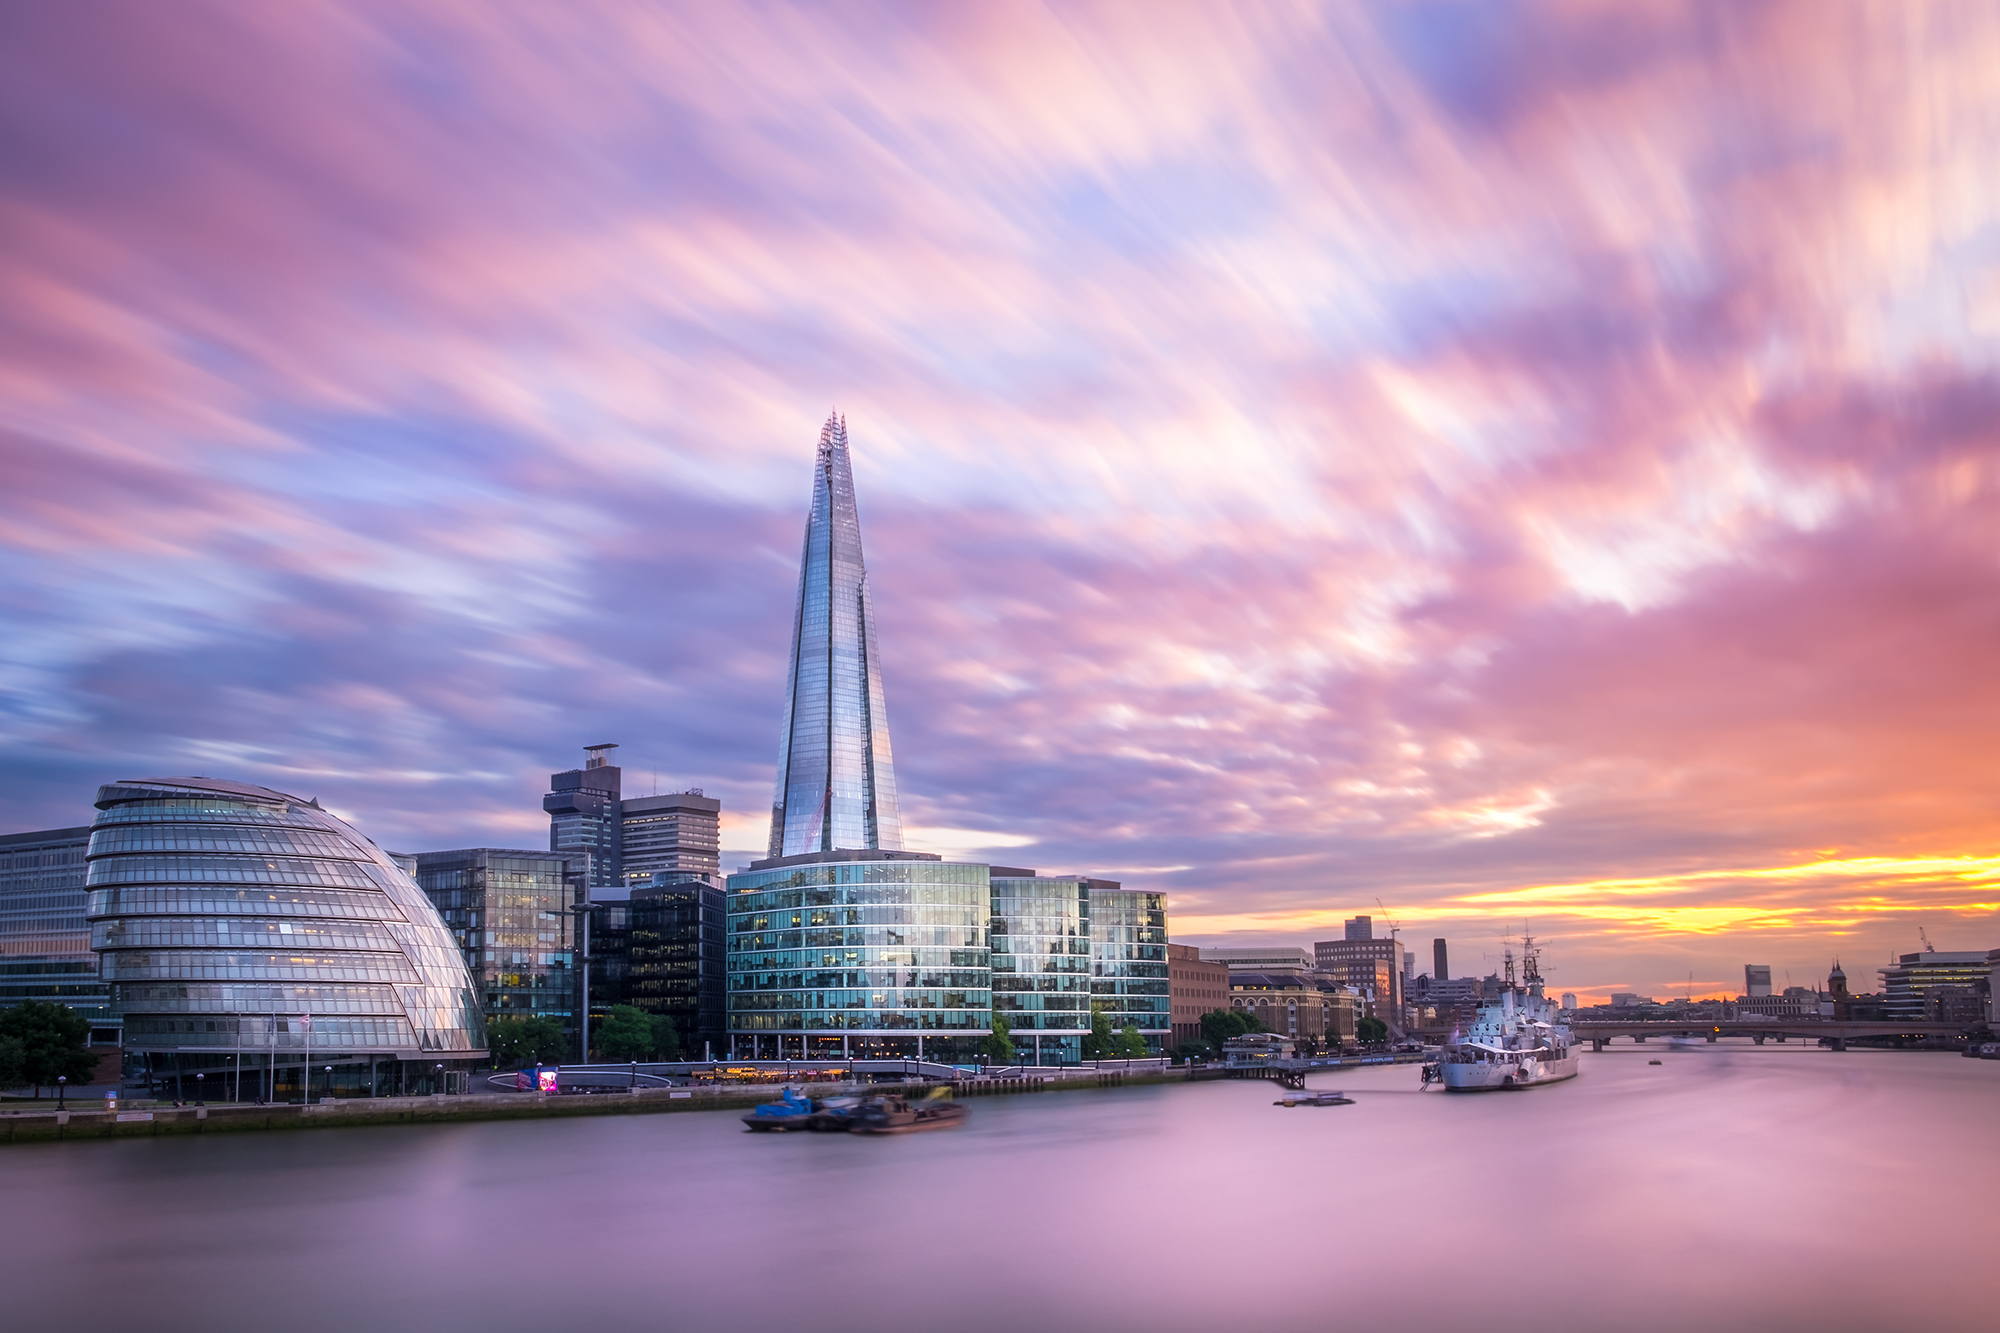 Cityscape long exposure photo of The Shard, London by Trevor Sherwin